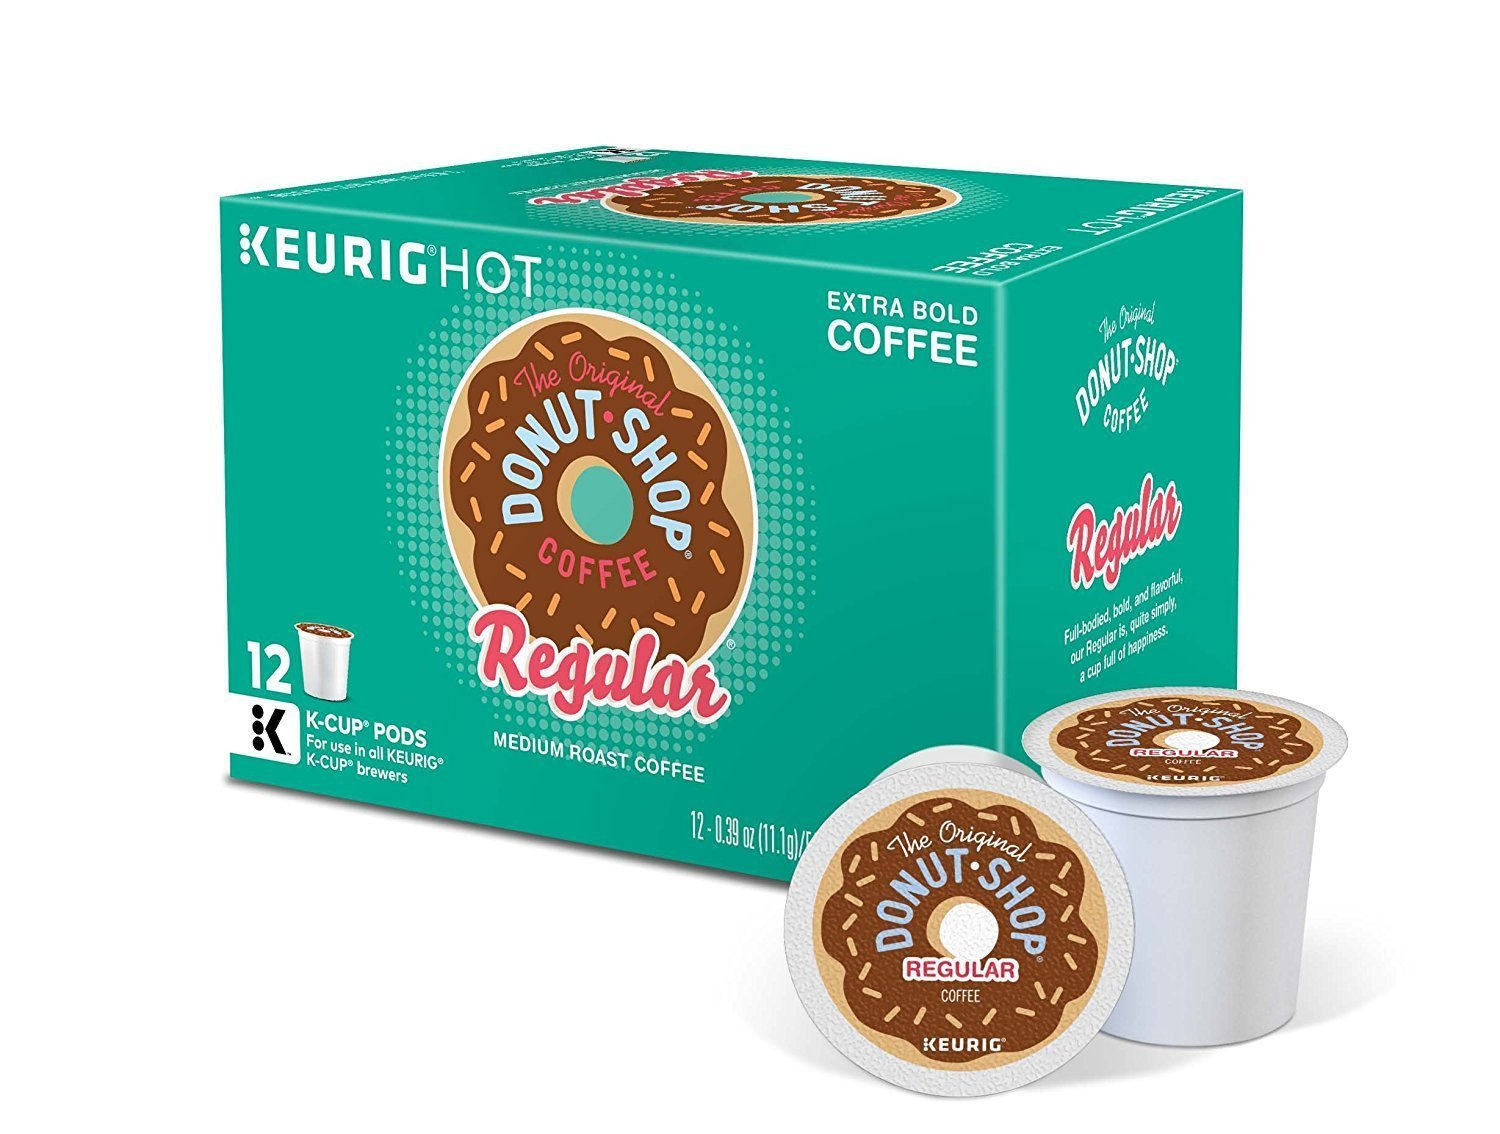 The Original Donut Shop K-Cup® Pods